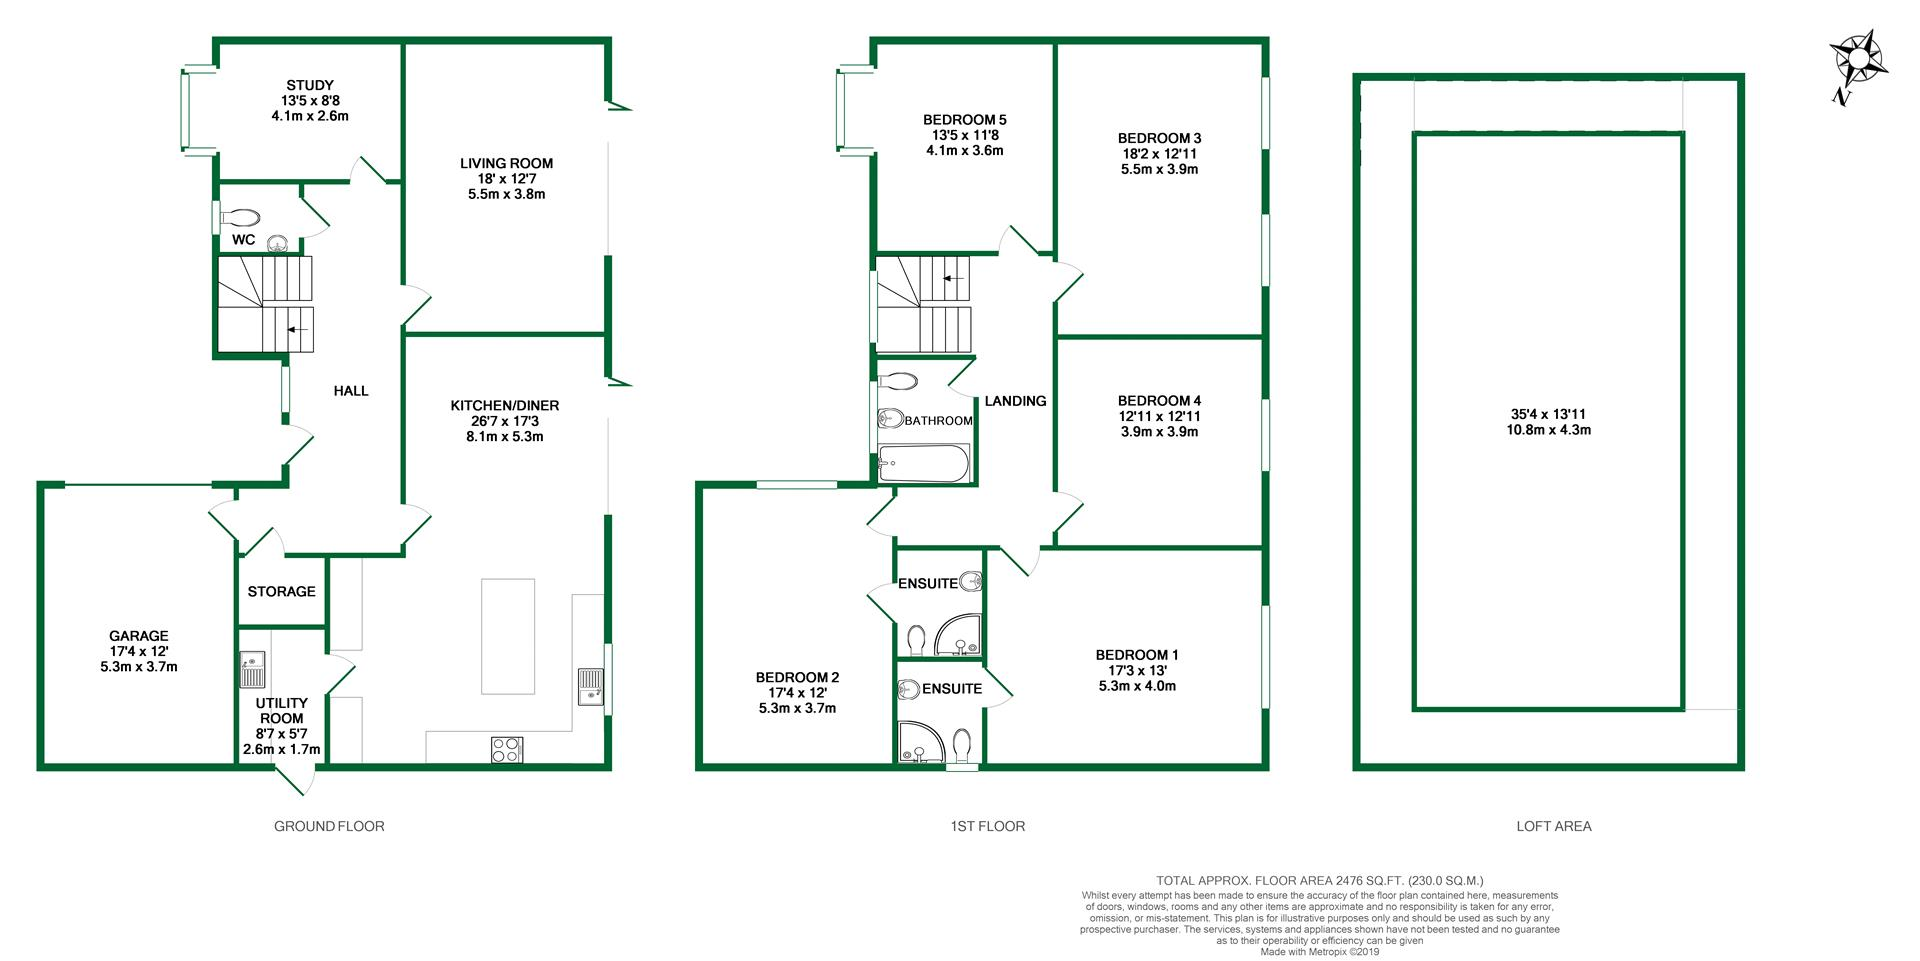 Floorplans For Park View Drive South, Charvil, Reading